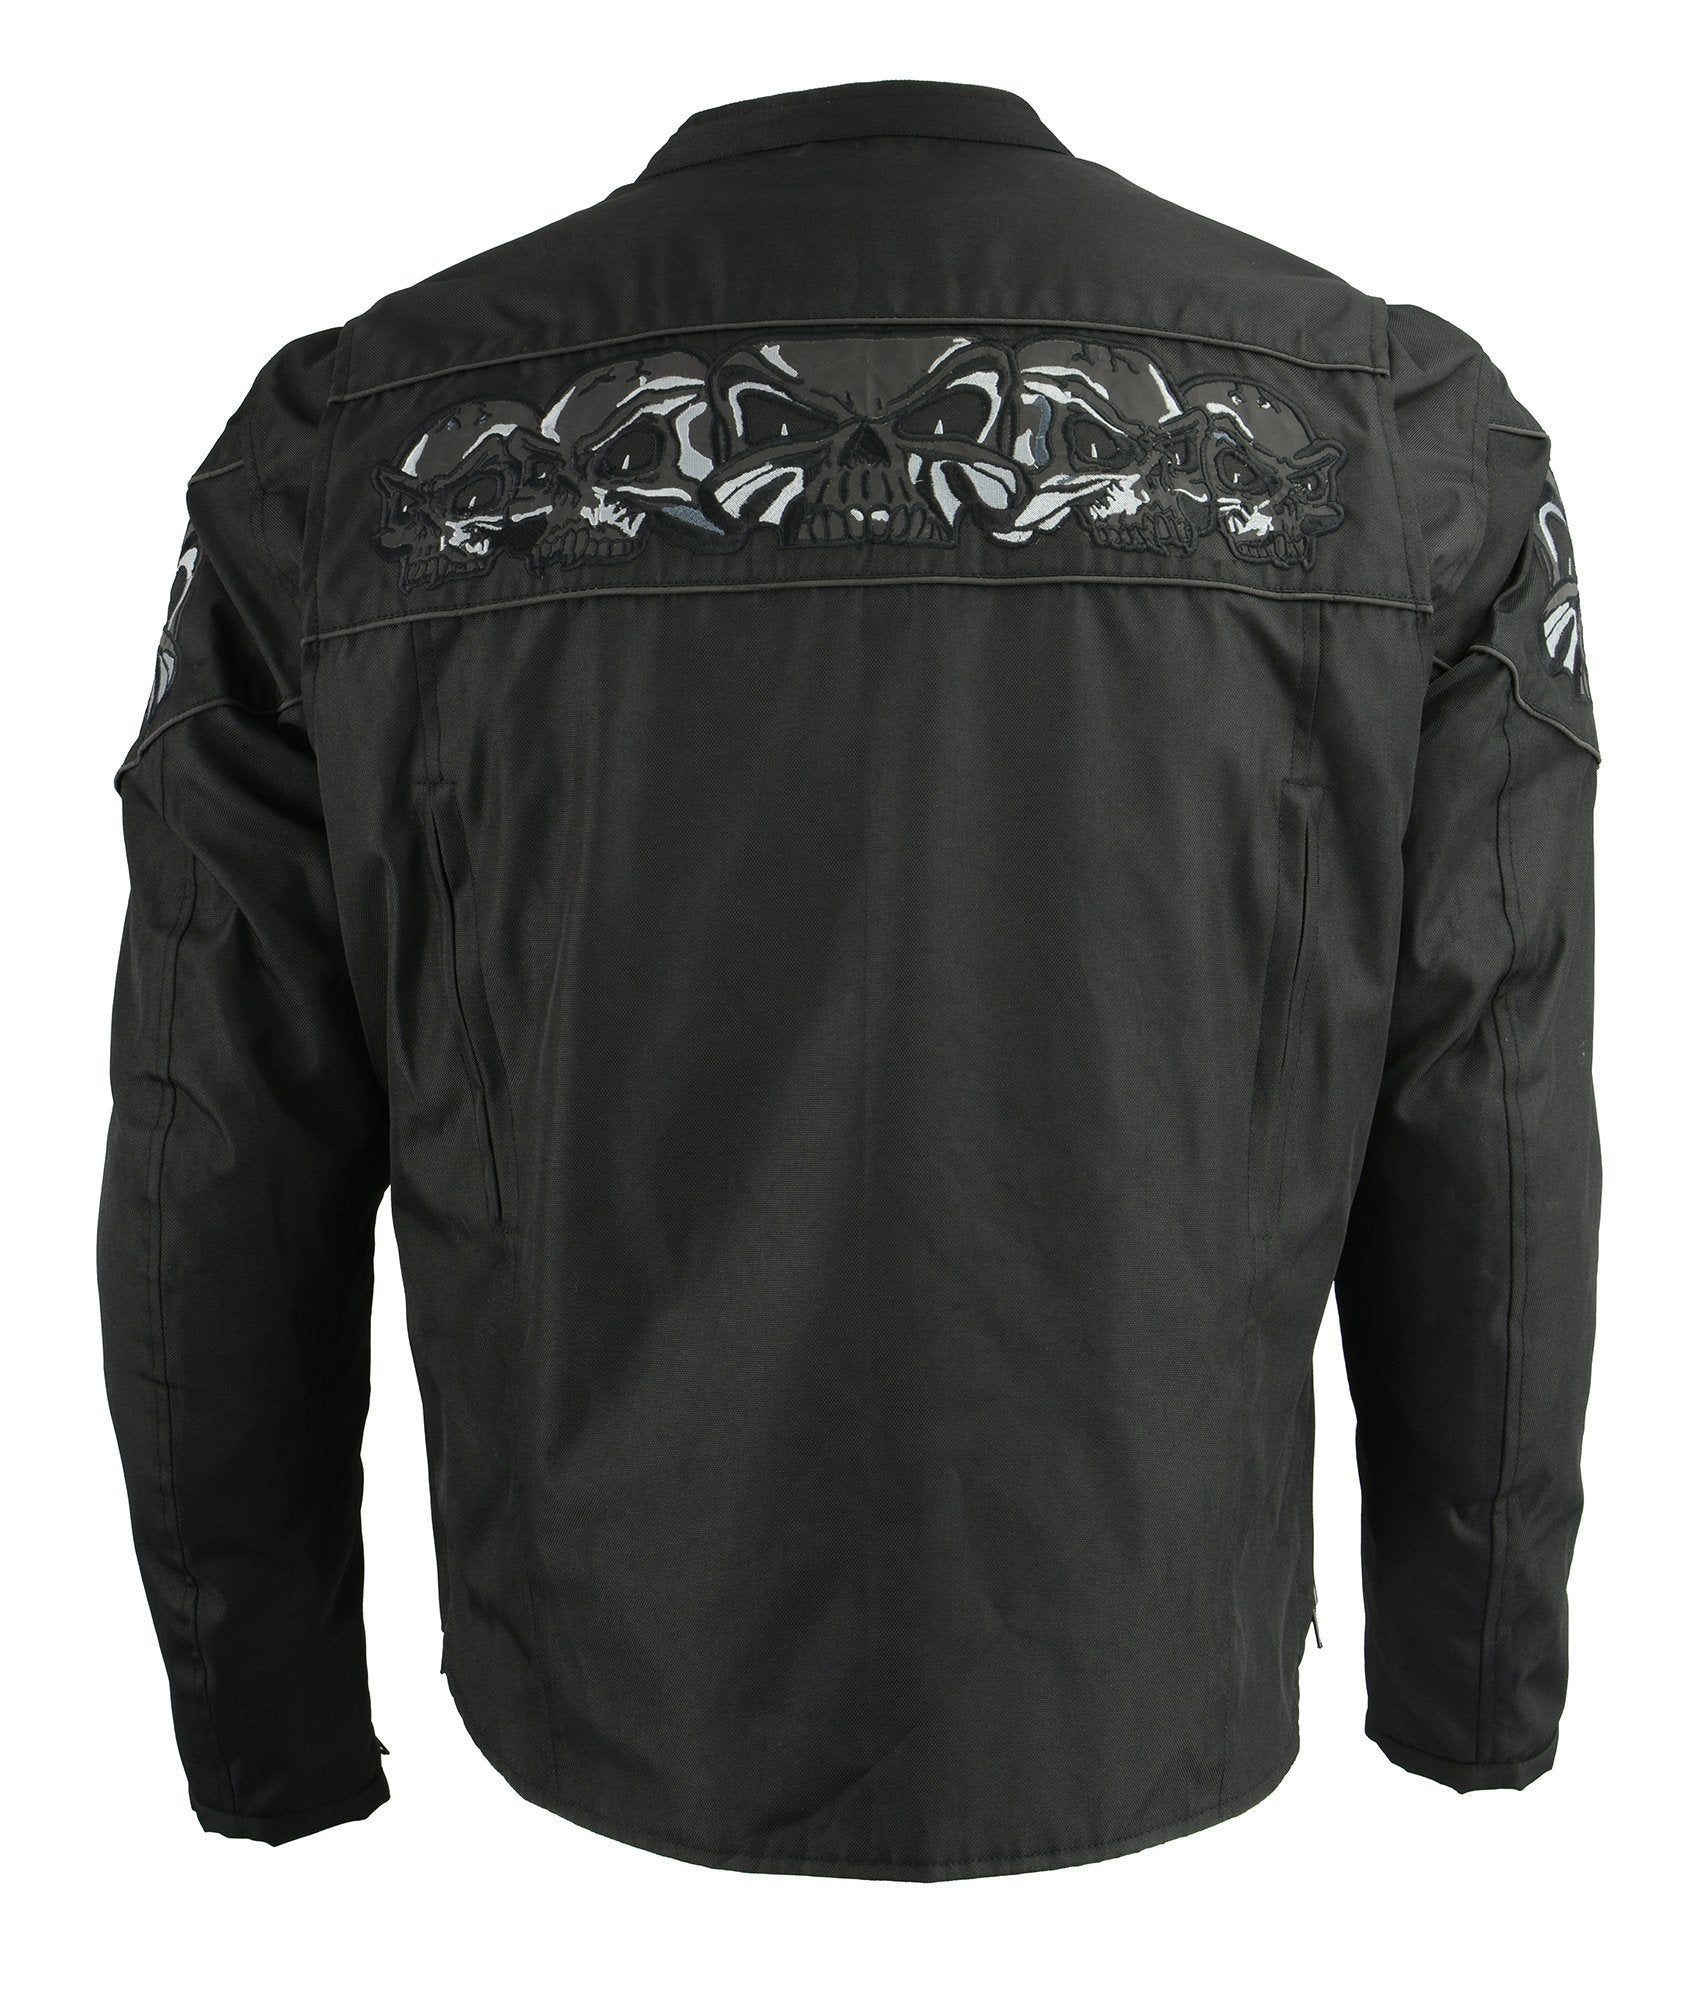 M Boss Motorcycle Apparel BOS11704 Mens Black Textile Jacket with